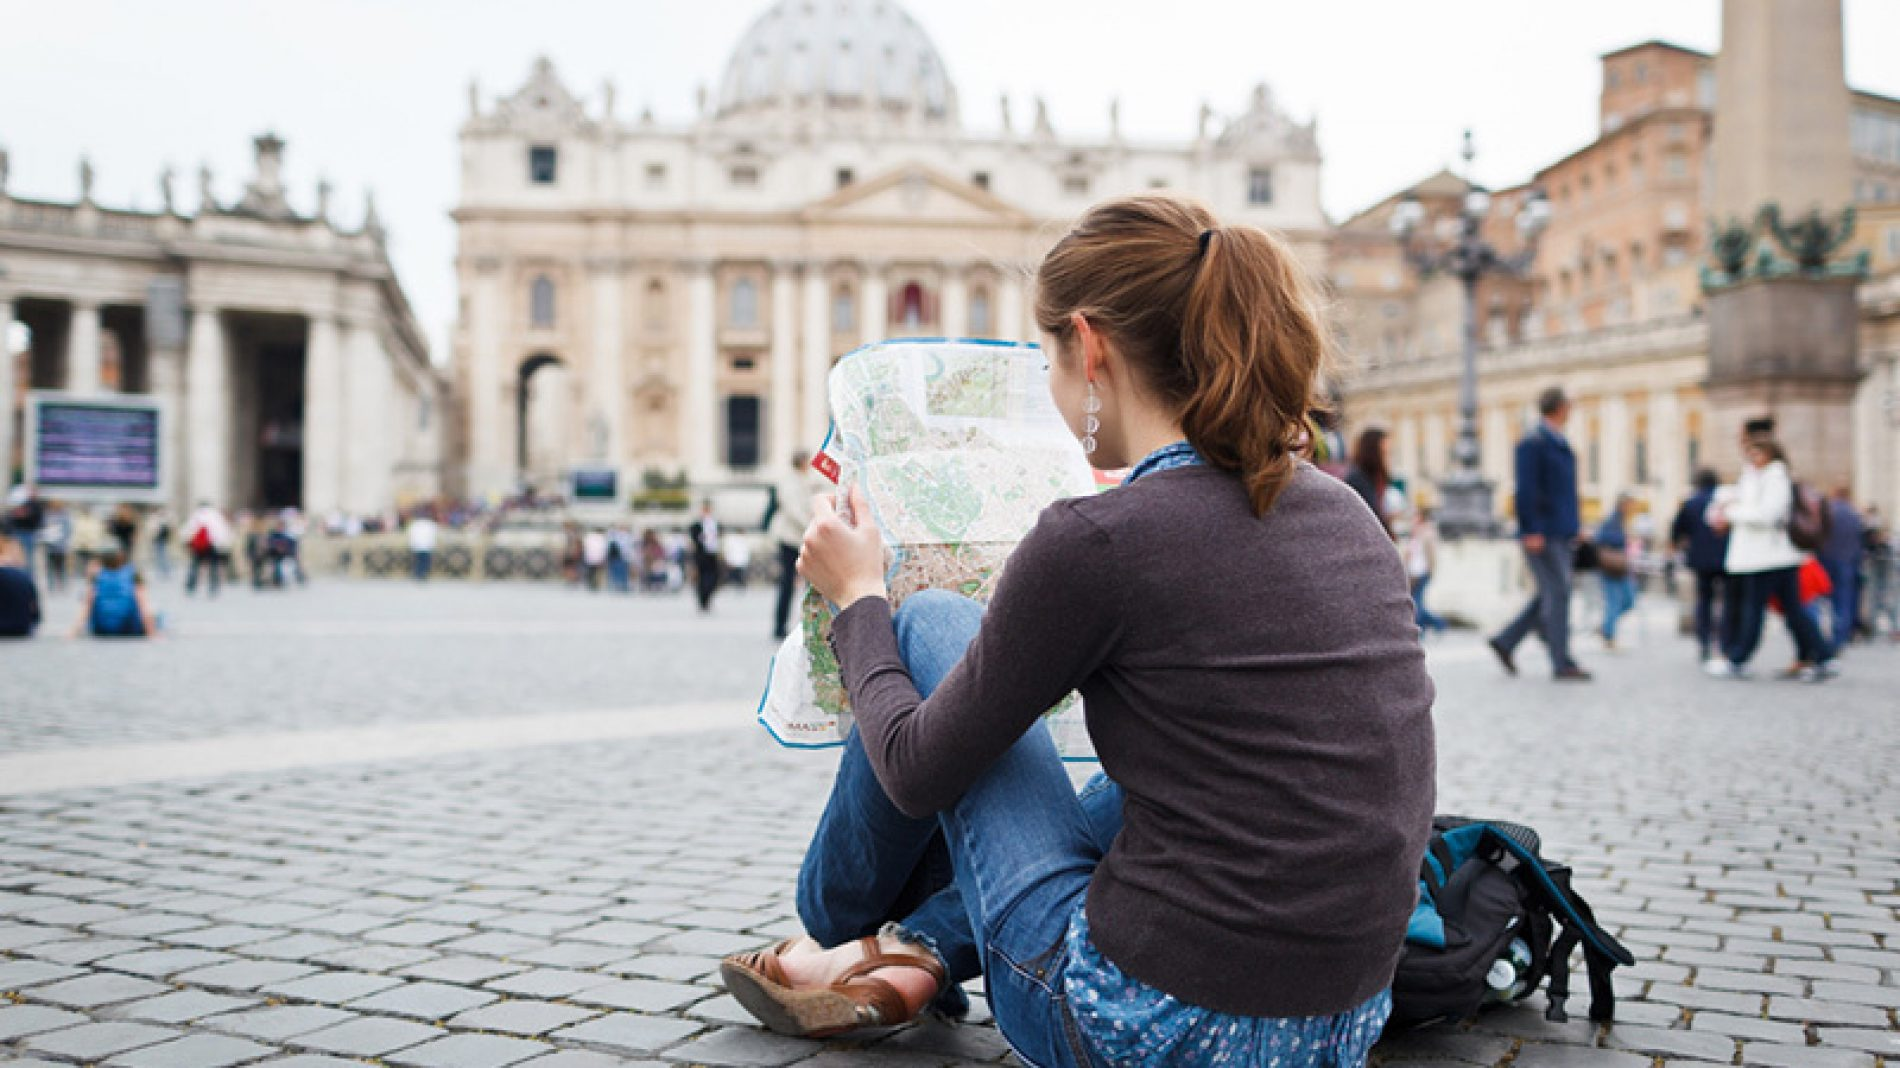 Photo of a person sitting on the ground in a city looking at a map